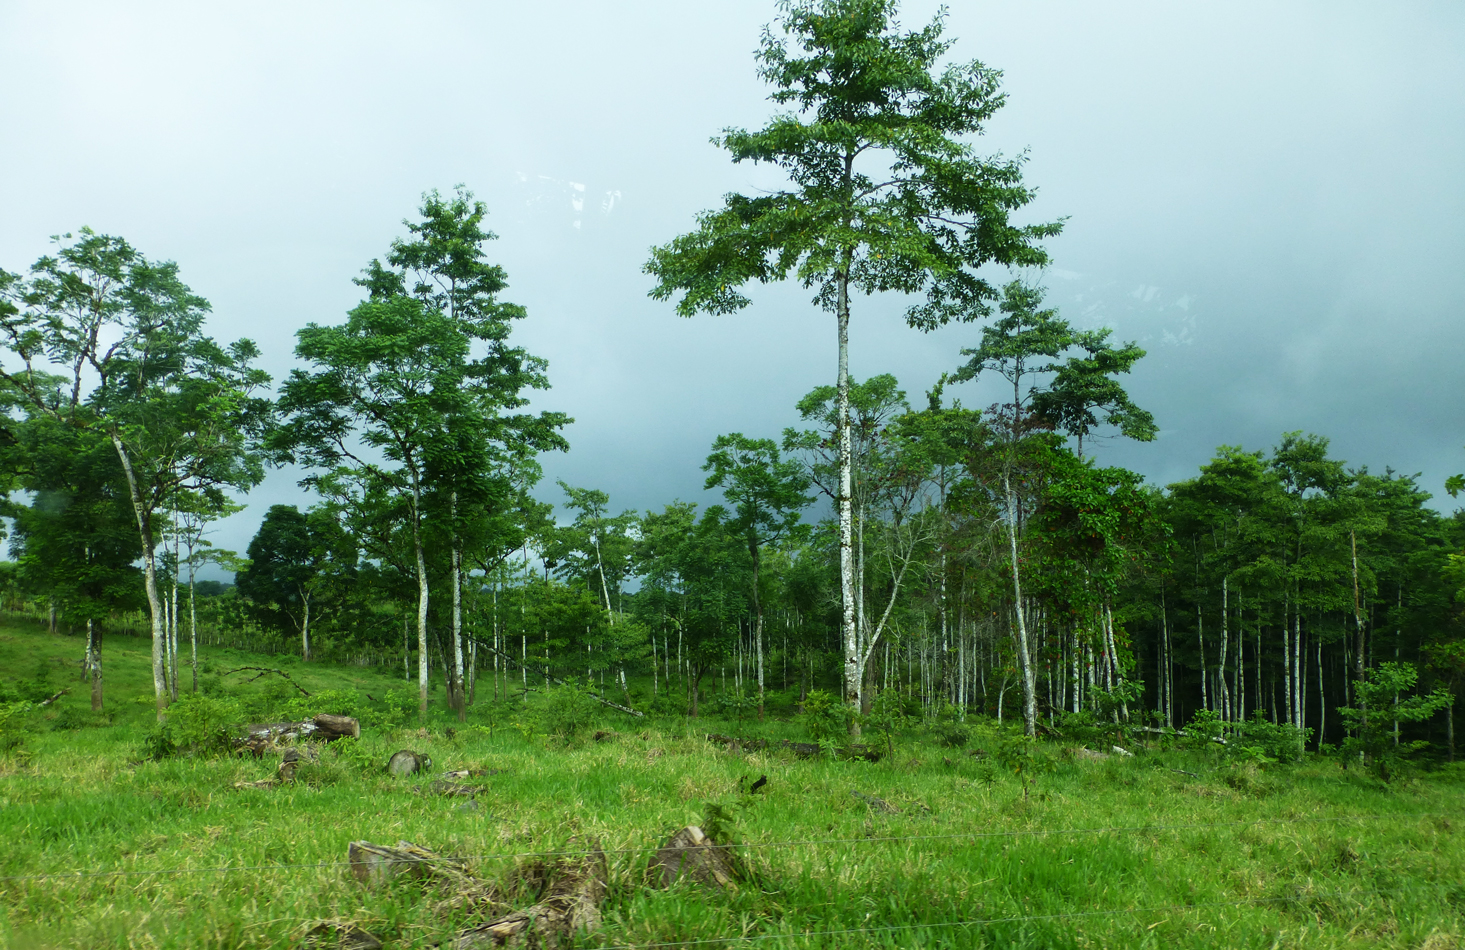 A look at a nearby forest